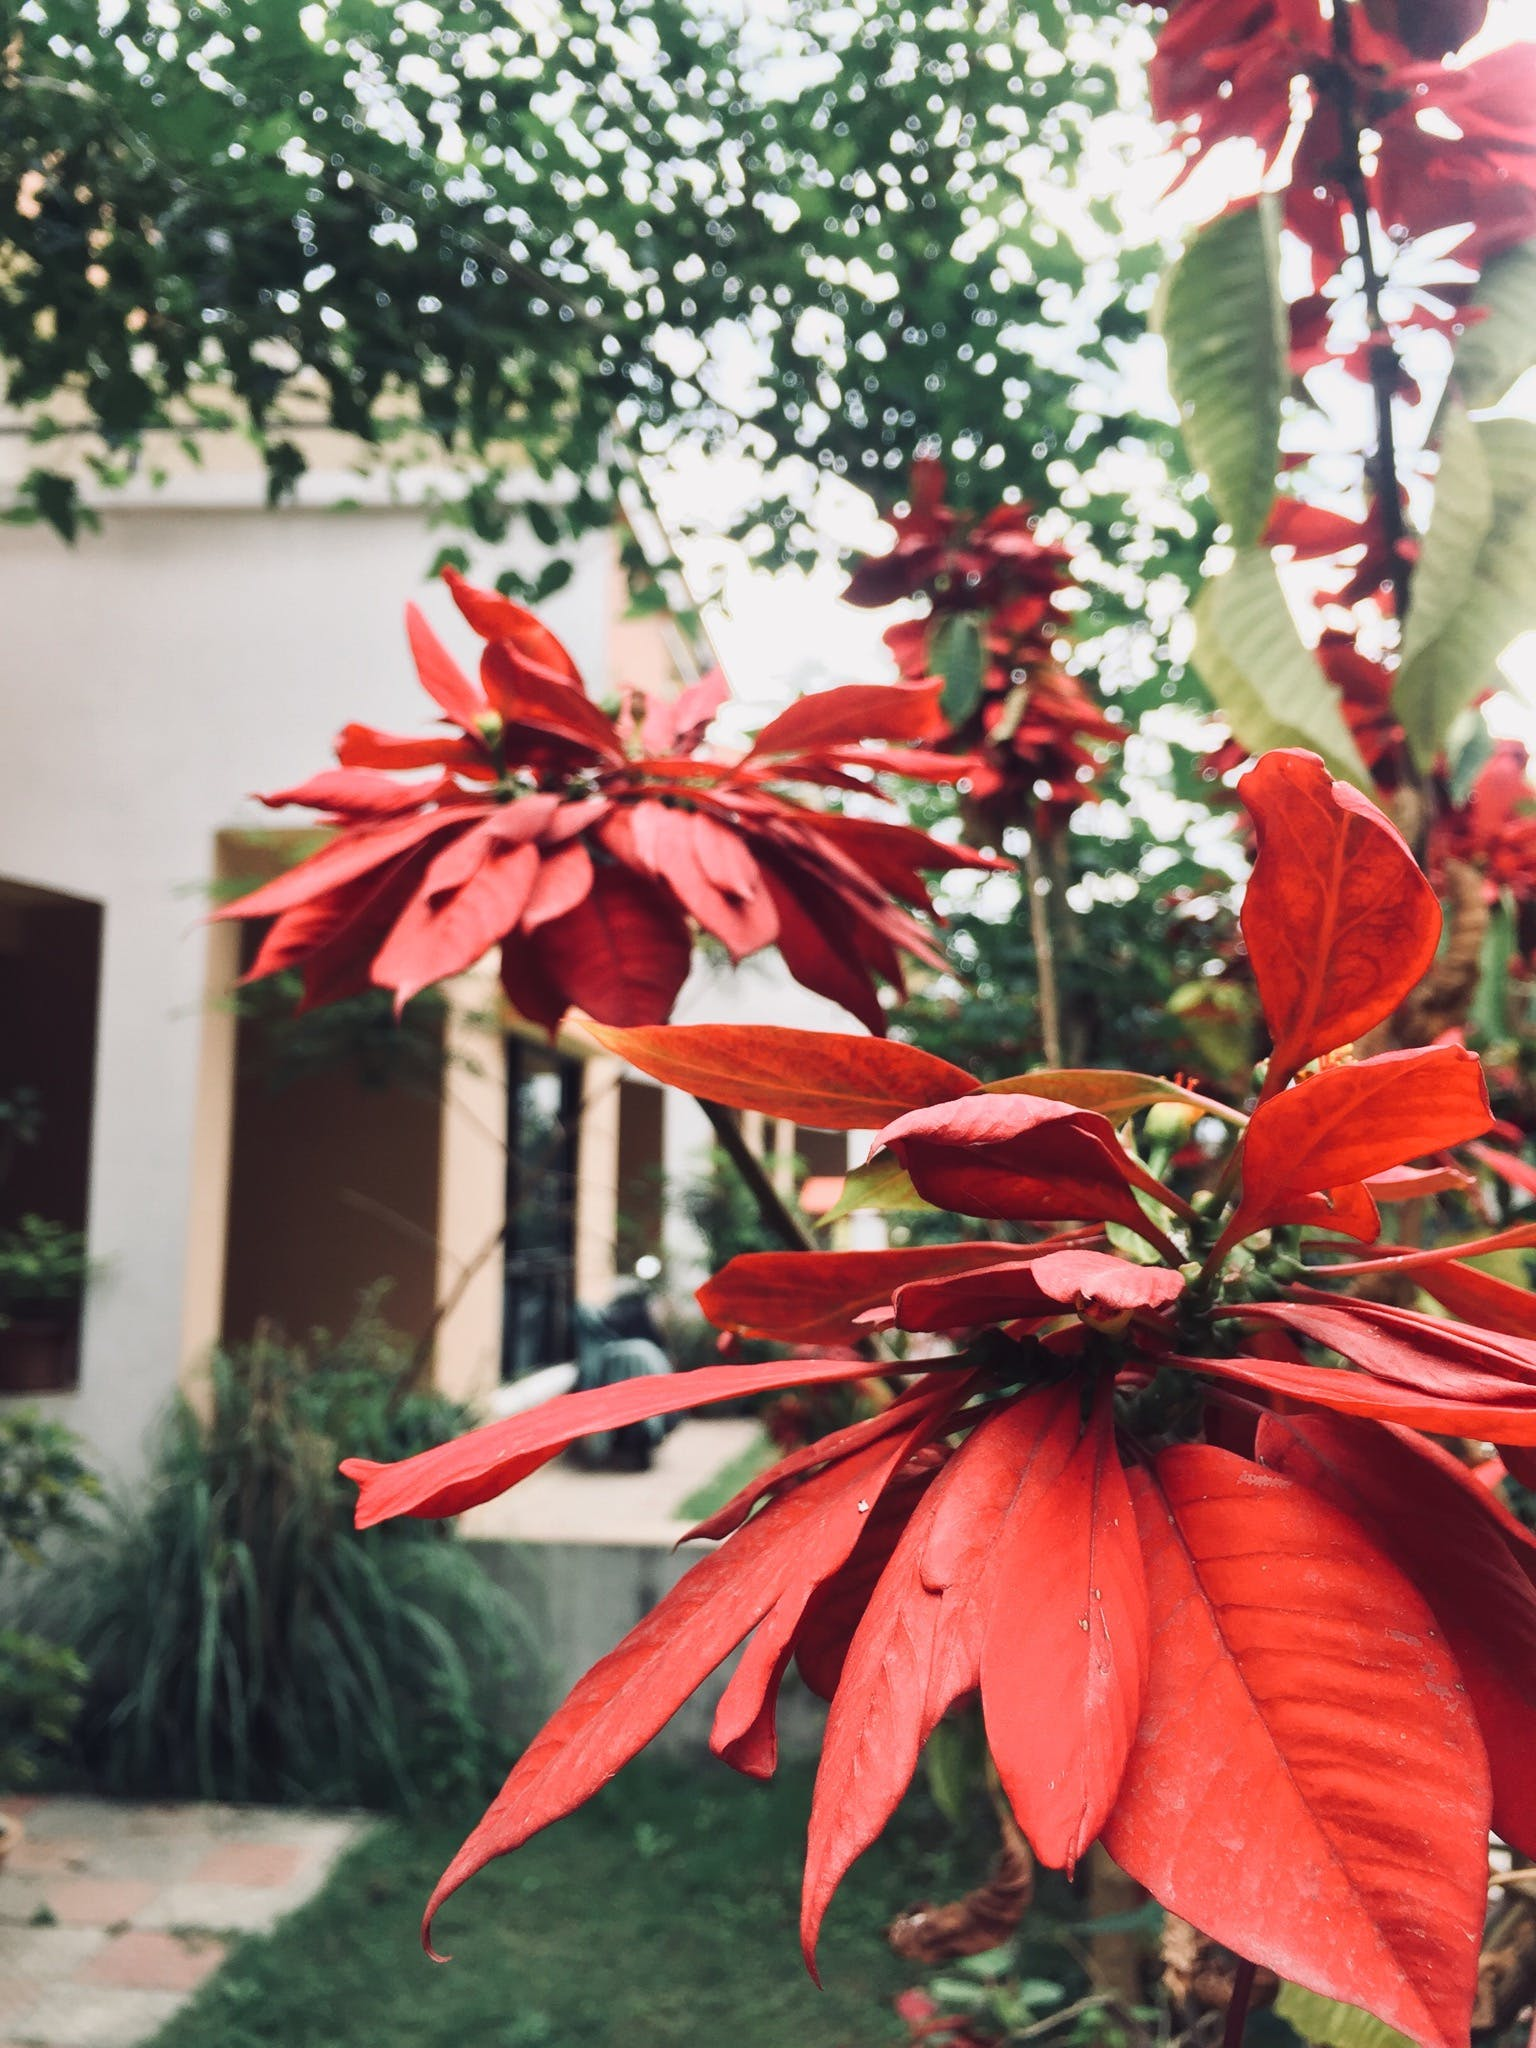 Free stock photo of red flower